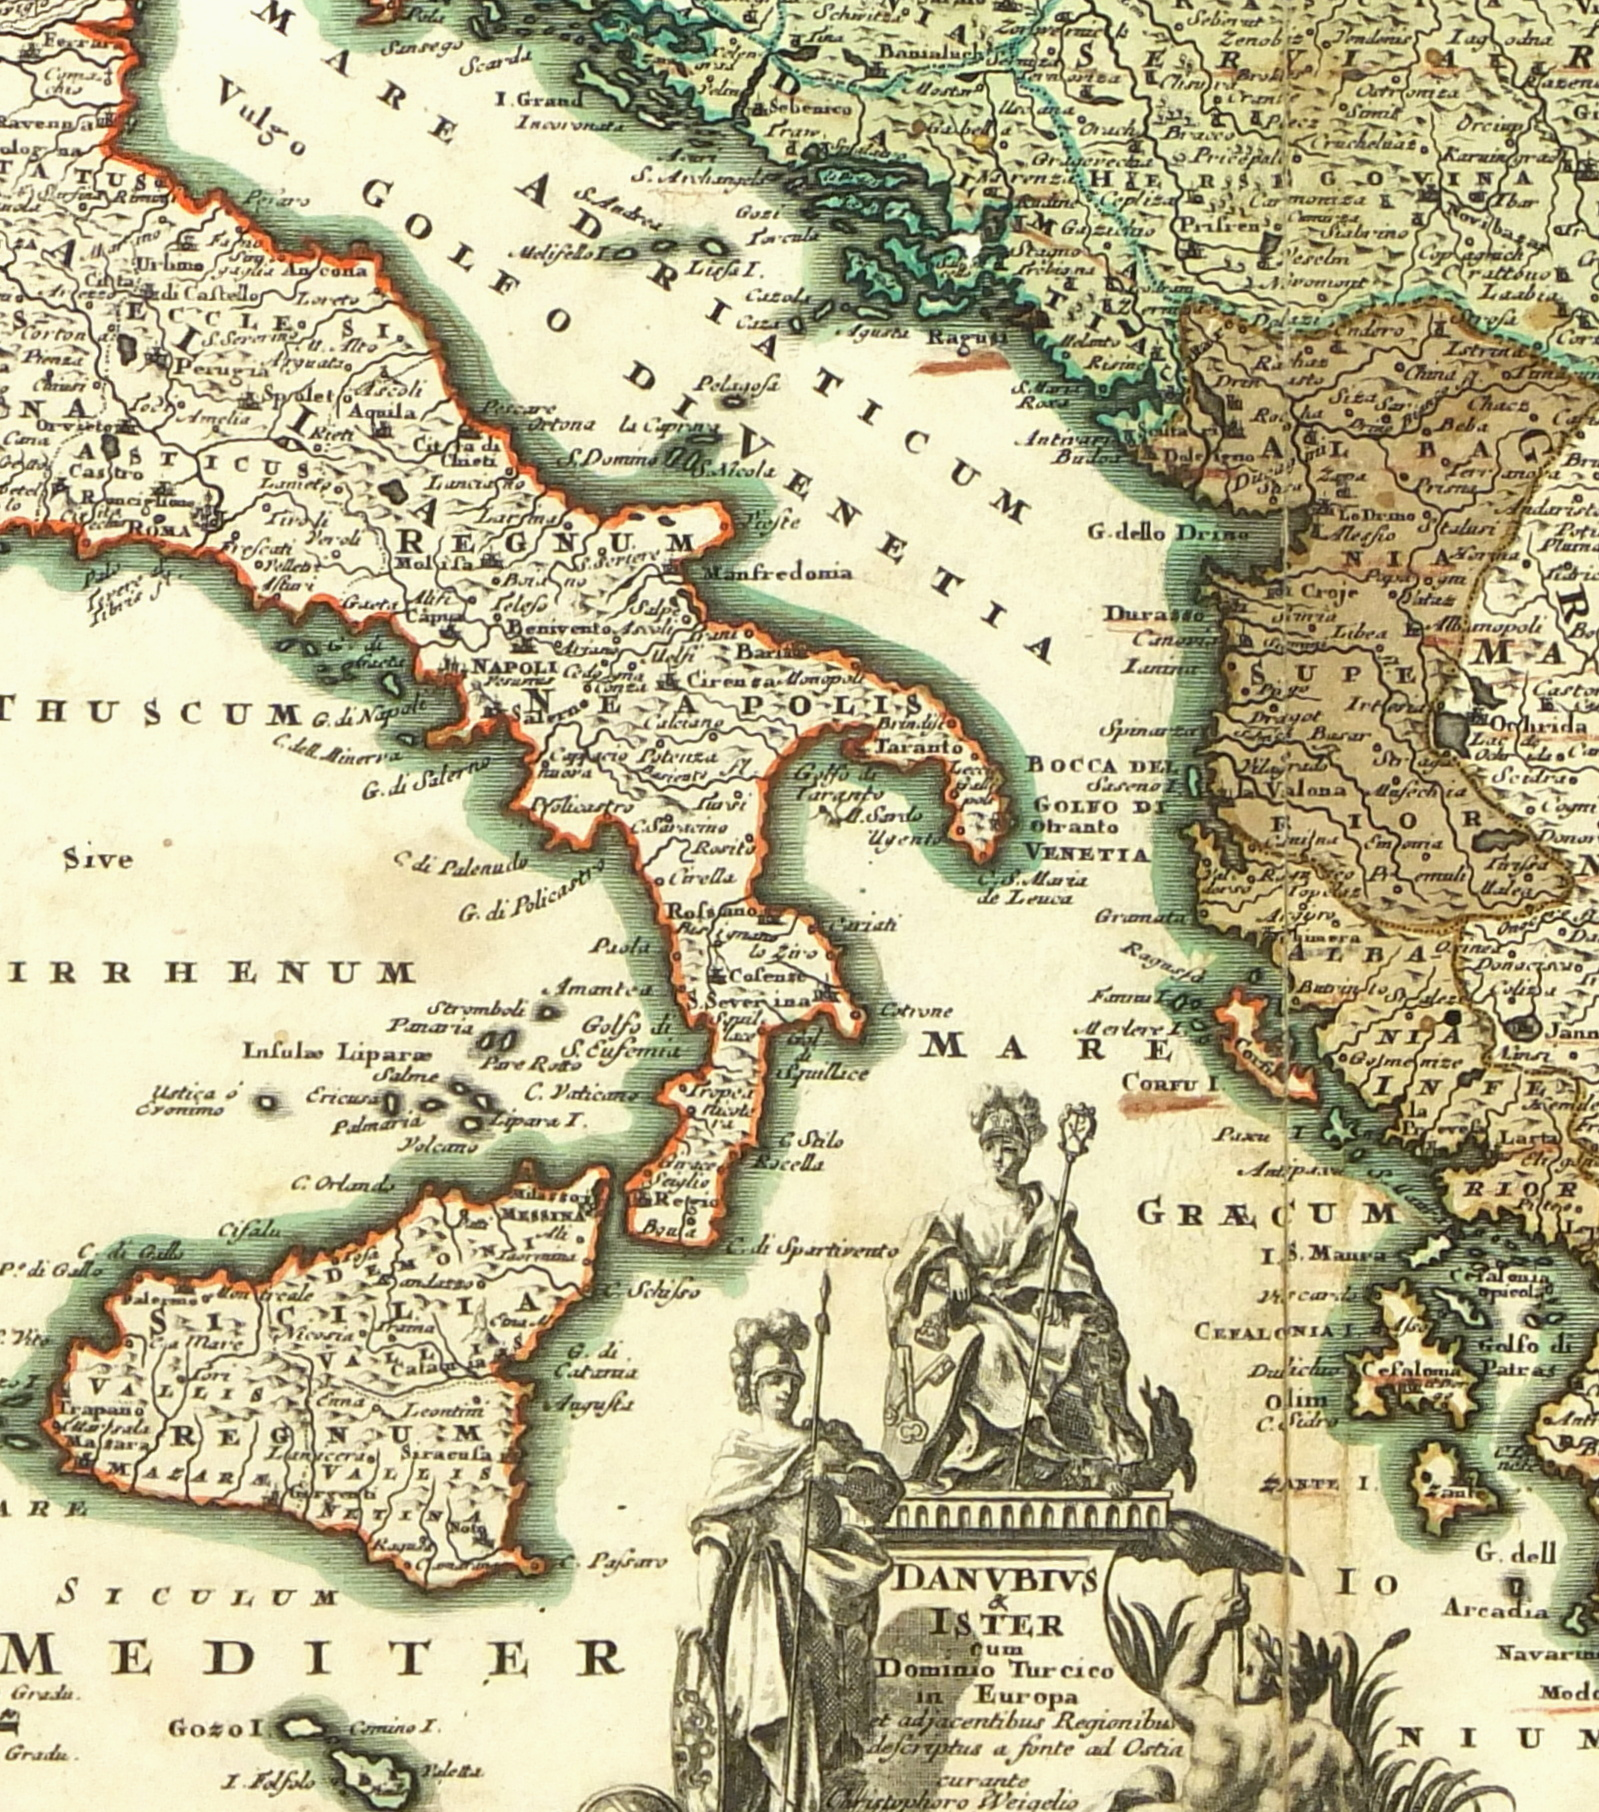 Map of Italy to Greece, 1724 - Original Art, Antique Maps & Prints